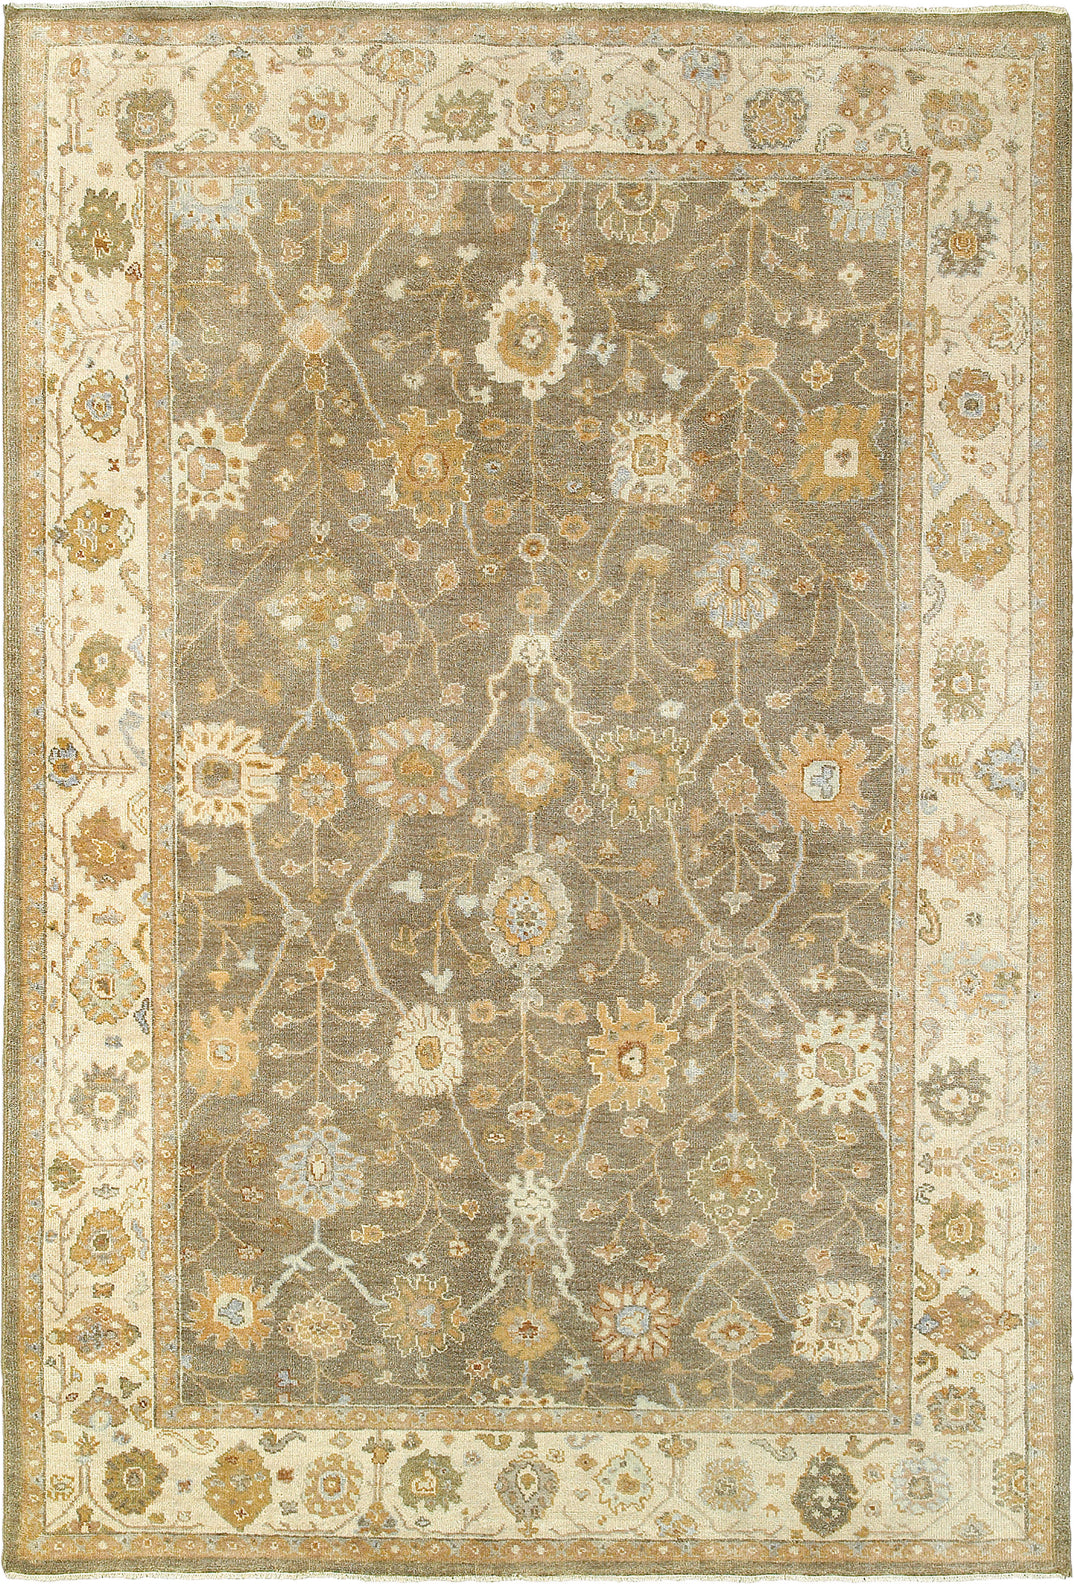 Tommy Bahama Palace 10302 Brown Area Rug main image